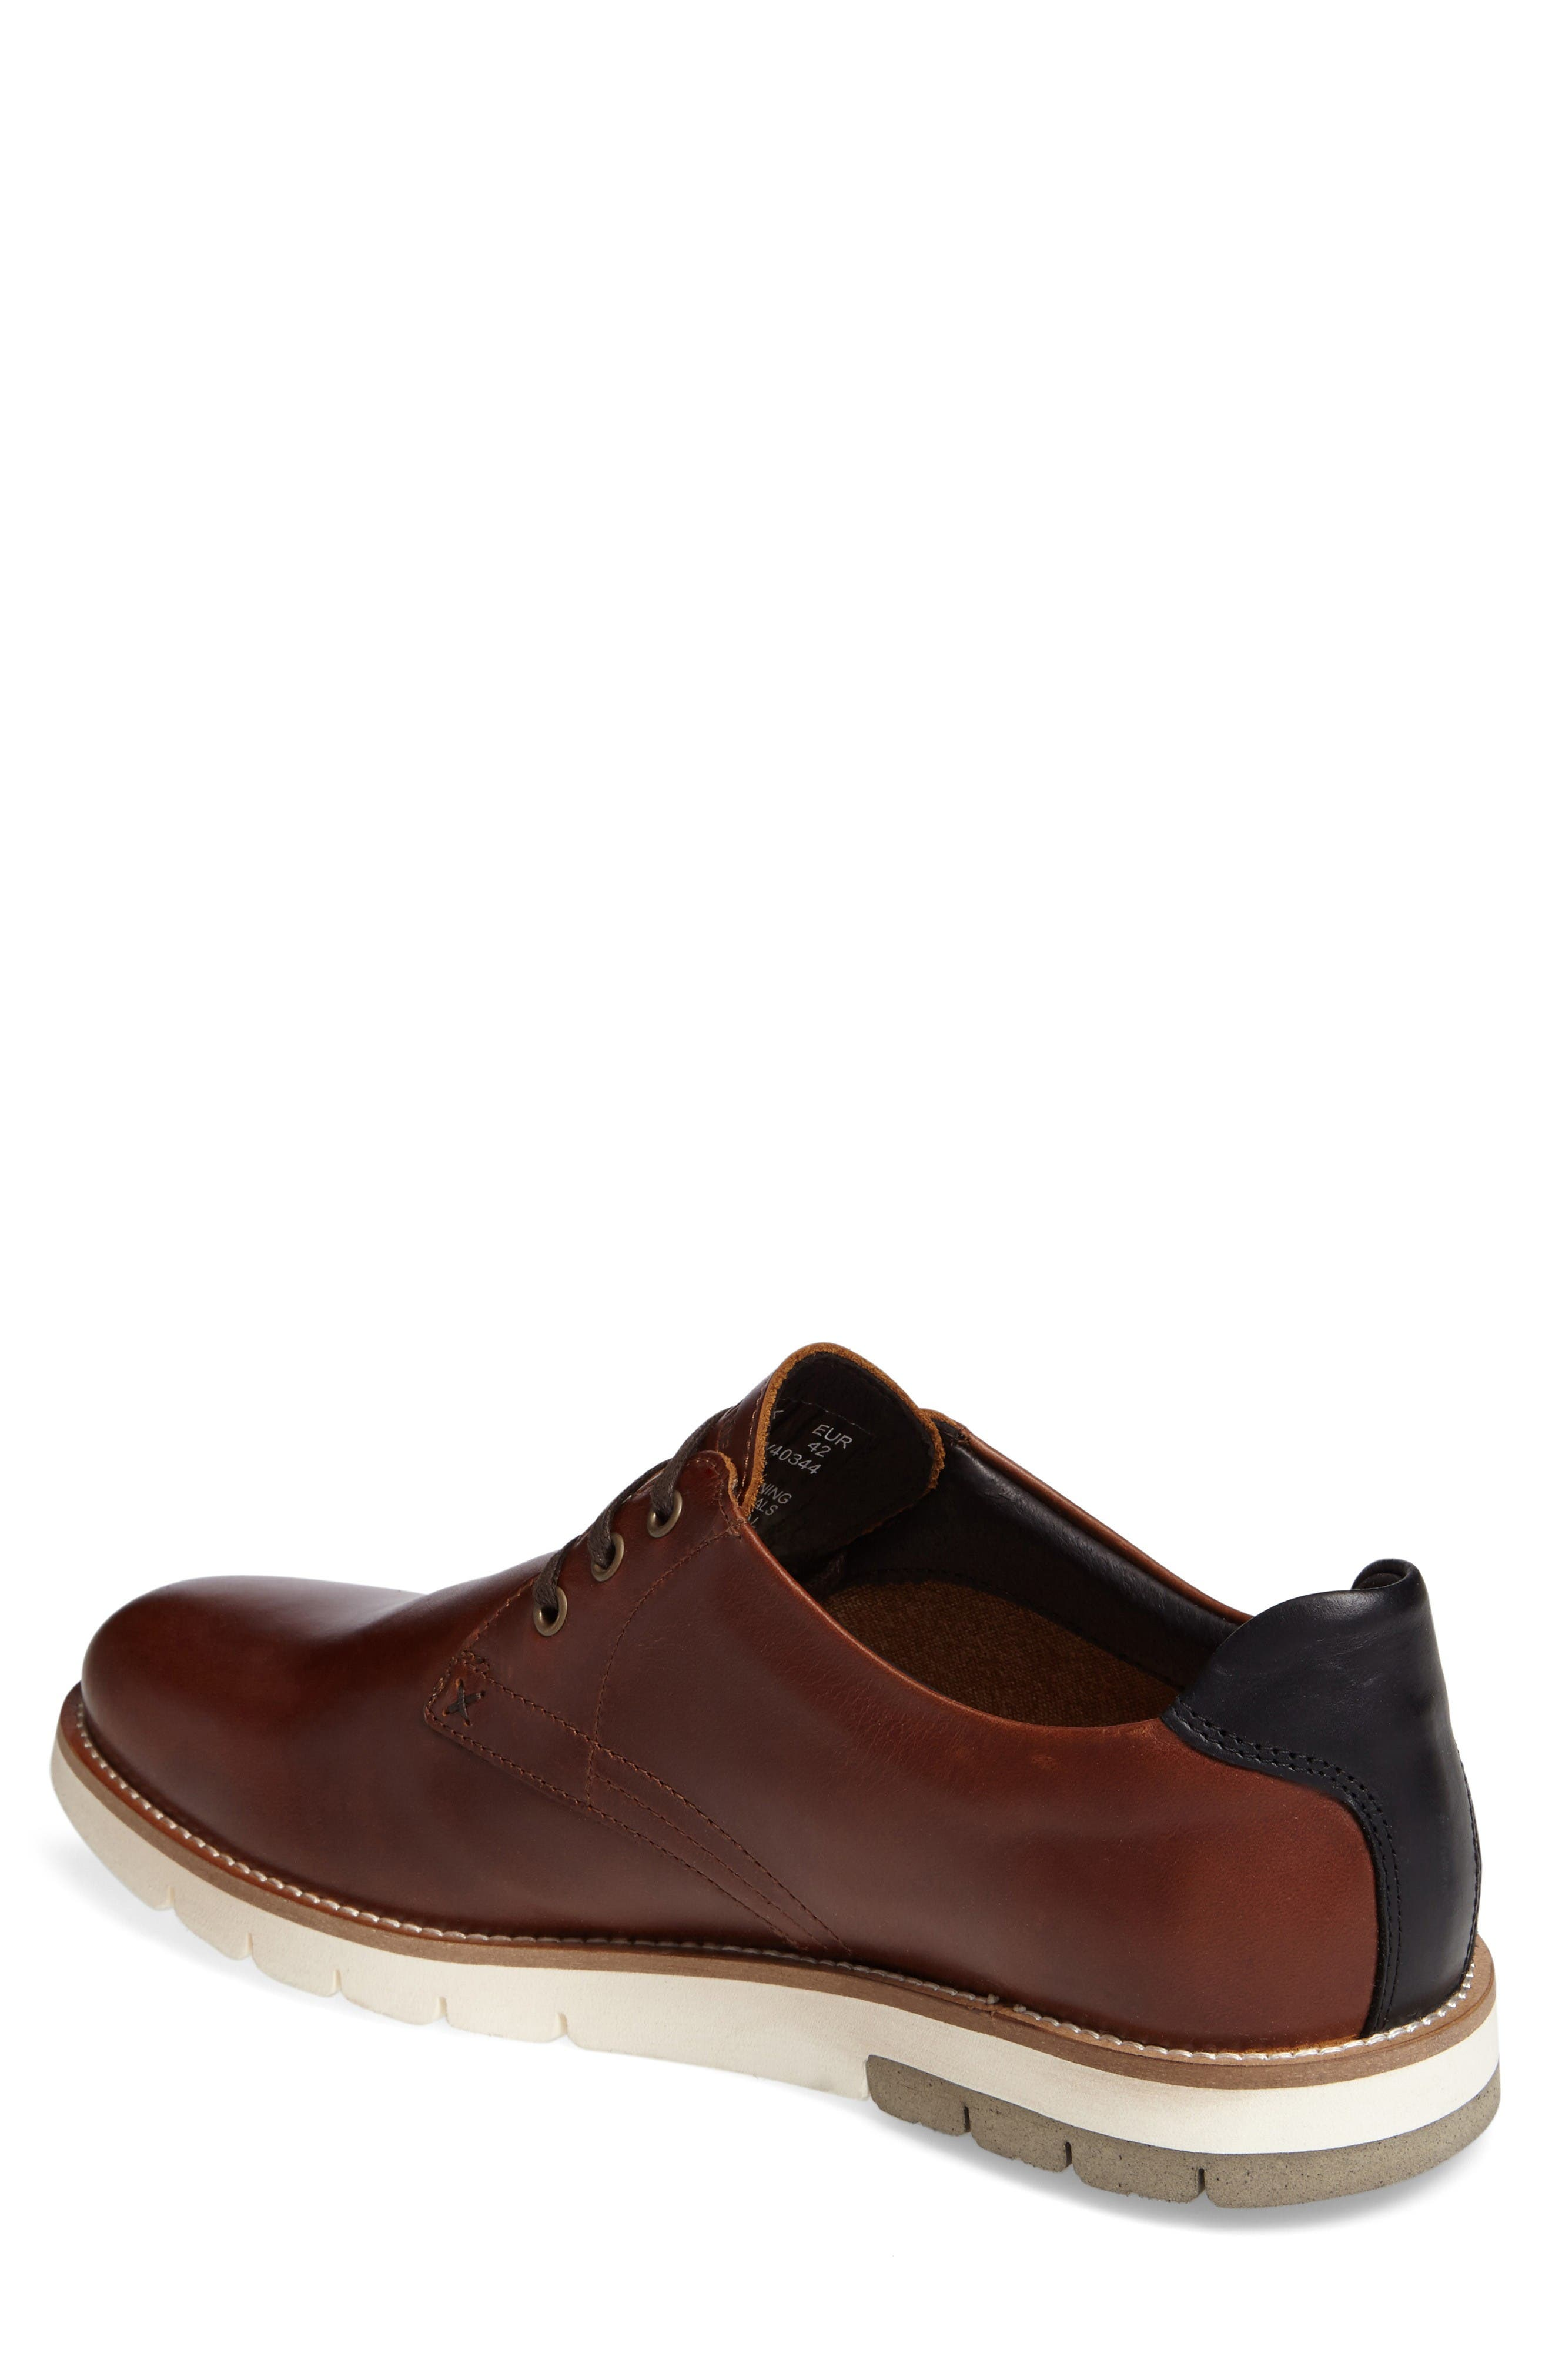 Alternate Image 2  - Wolverine Reuben Plain Toe Derby (Men)